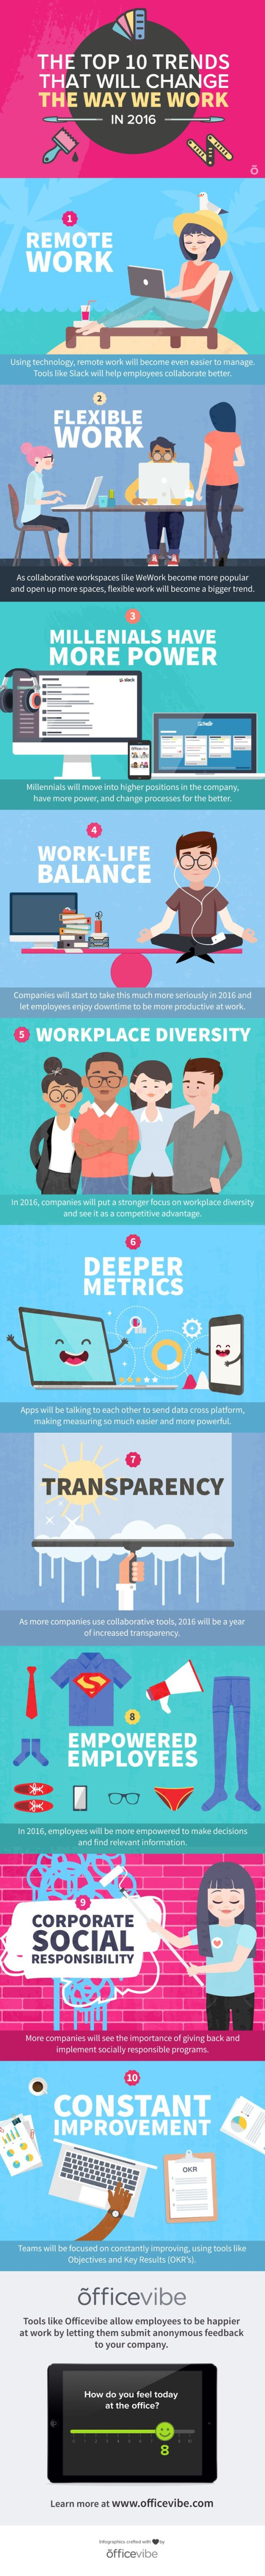 The Top 10 Trends That Will Change The Way We Work in 2016 #Infographic